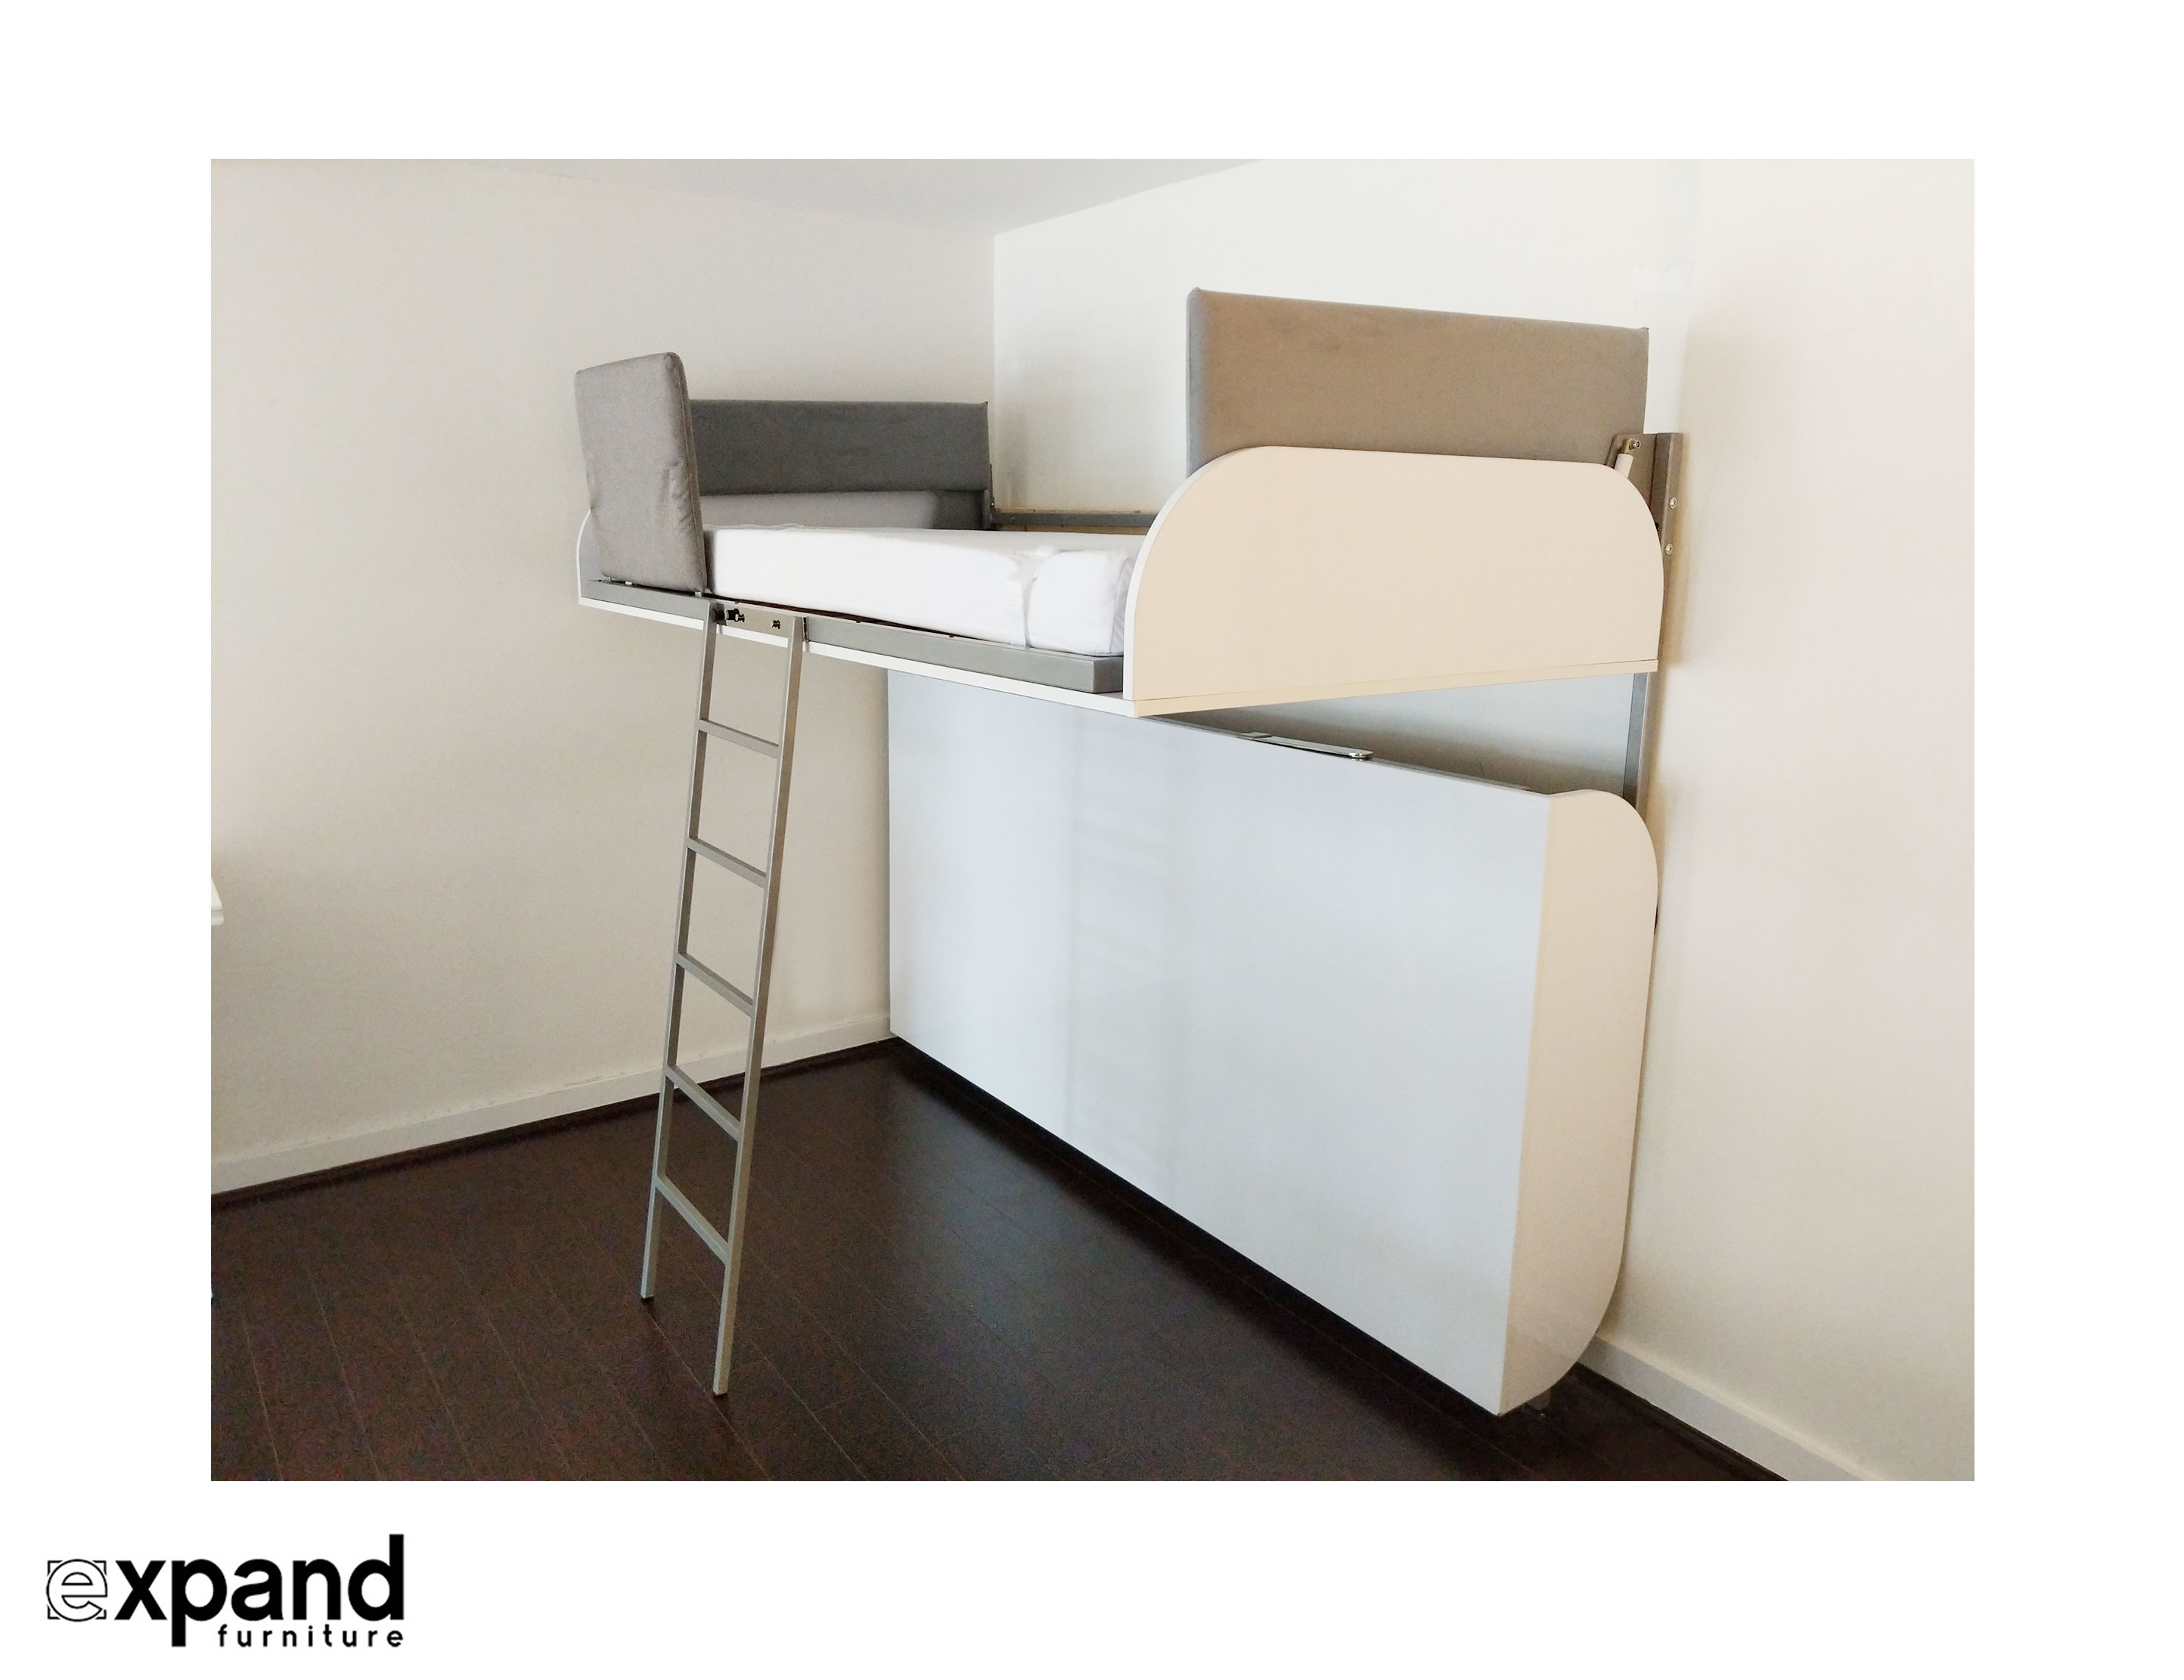 fold away single chair bed contemporary lounge chairs hover compact wall bunk beds expand